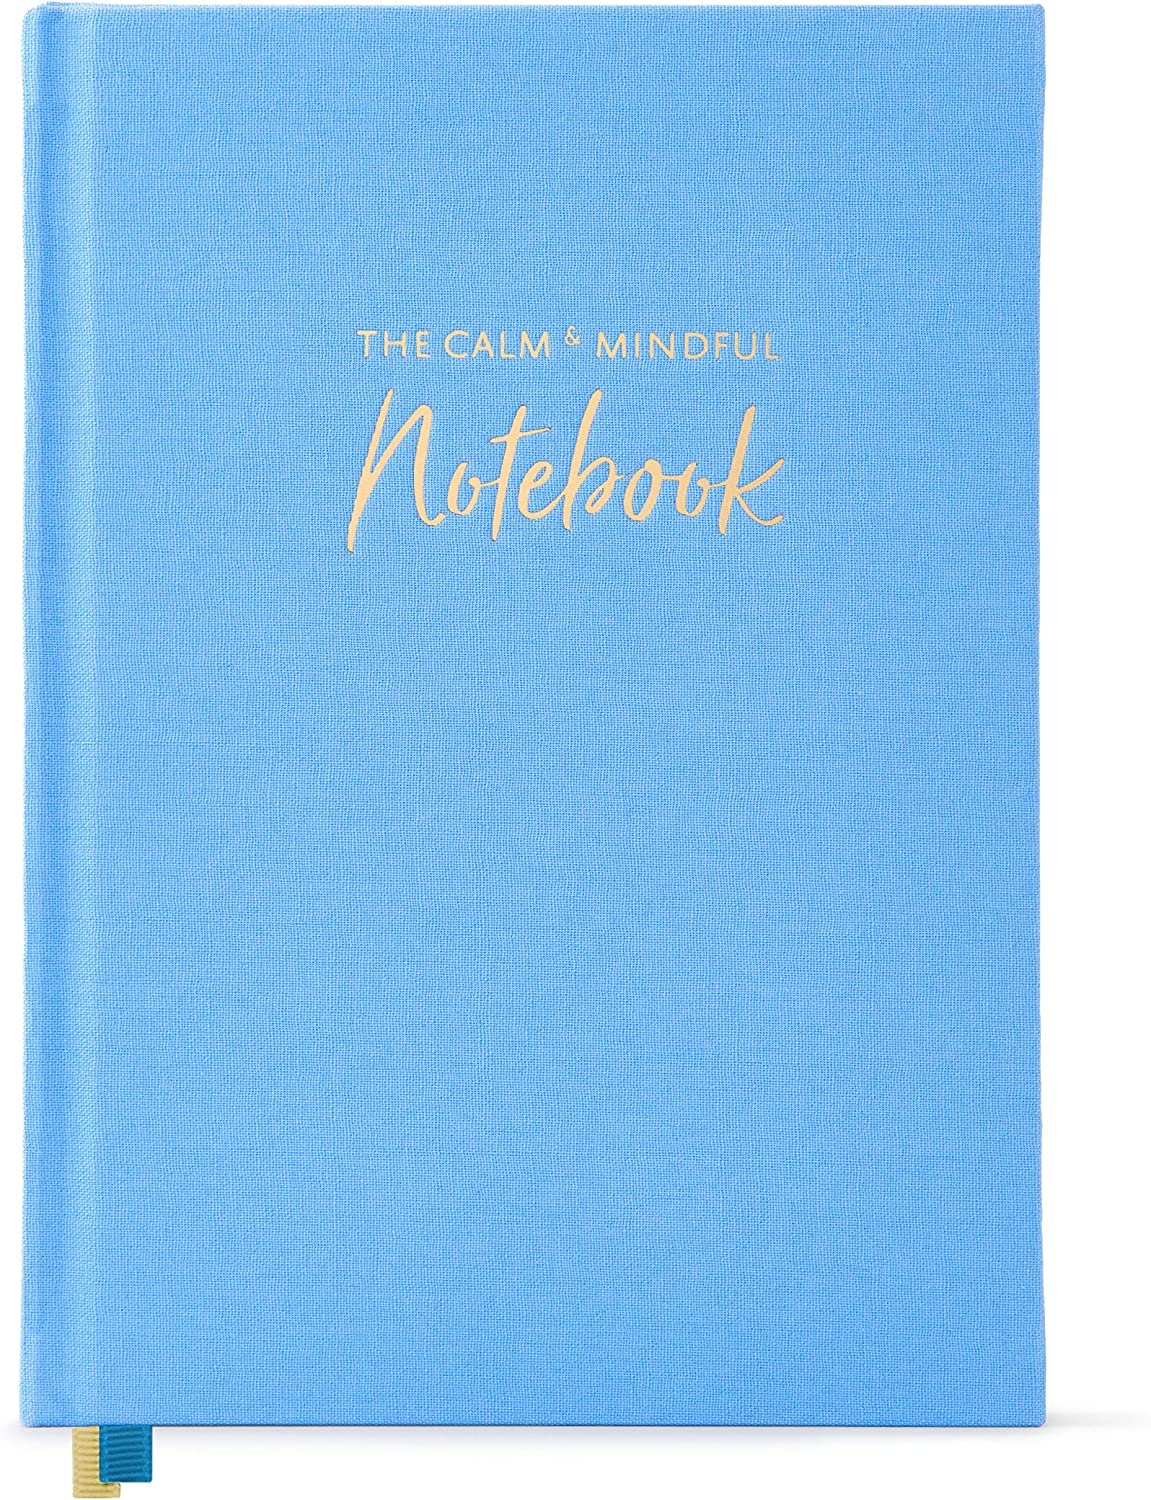 "The Calm & Mindful Notebook – Guided Mindfulness and Self Care Journal with Writing Prompts – 252 Hardbound Pages Promote Self Kindness, Meditation, Stress Relief and Gratitude (8.5"" x 6"")"